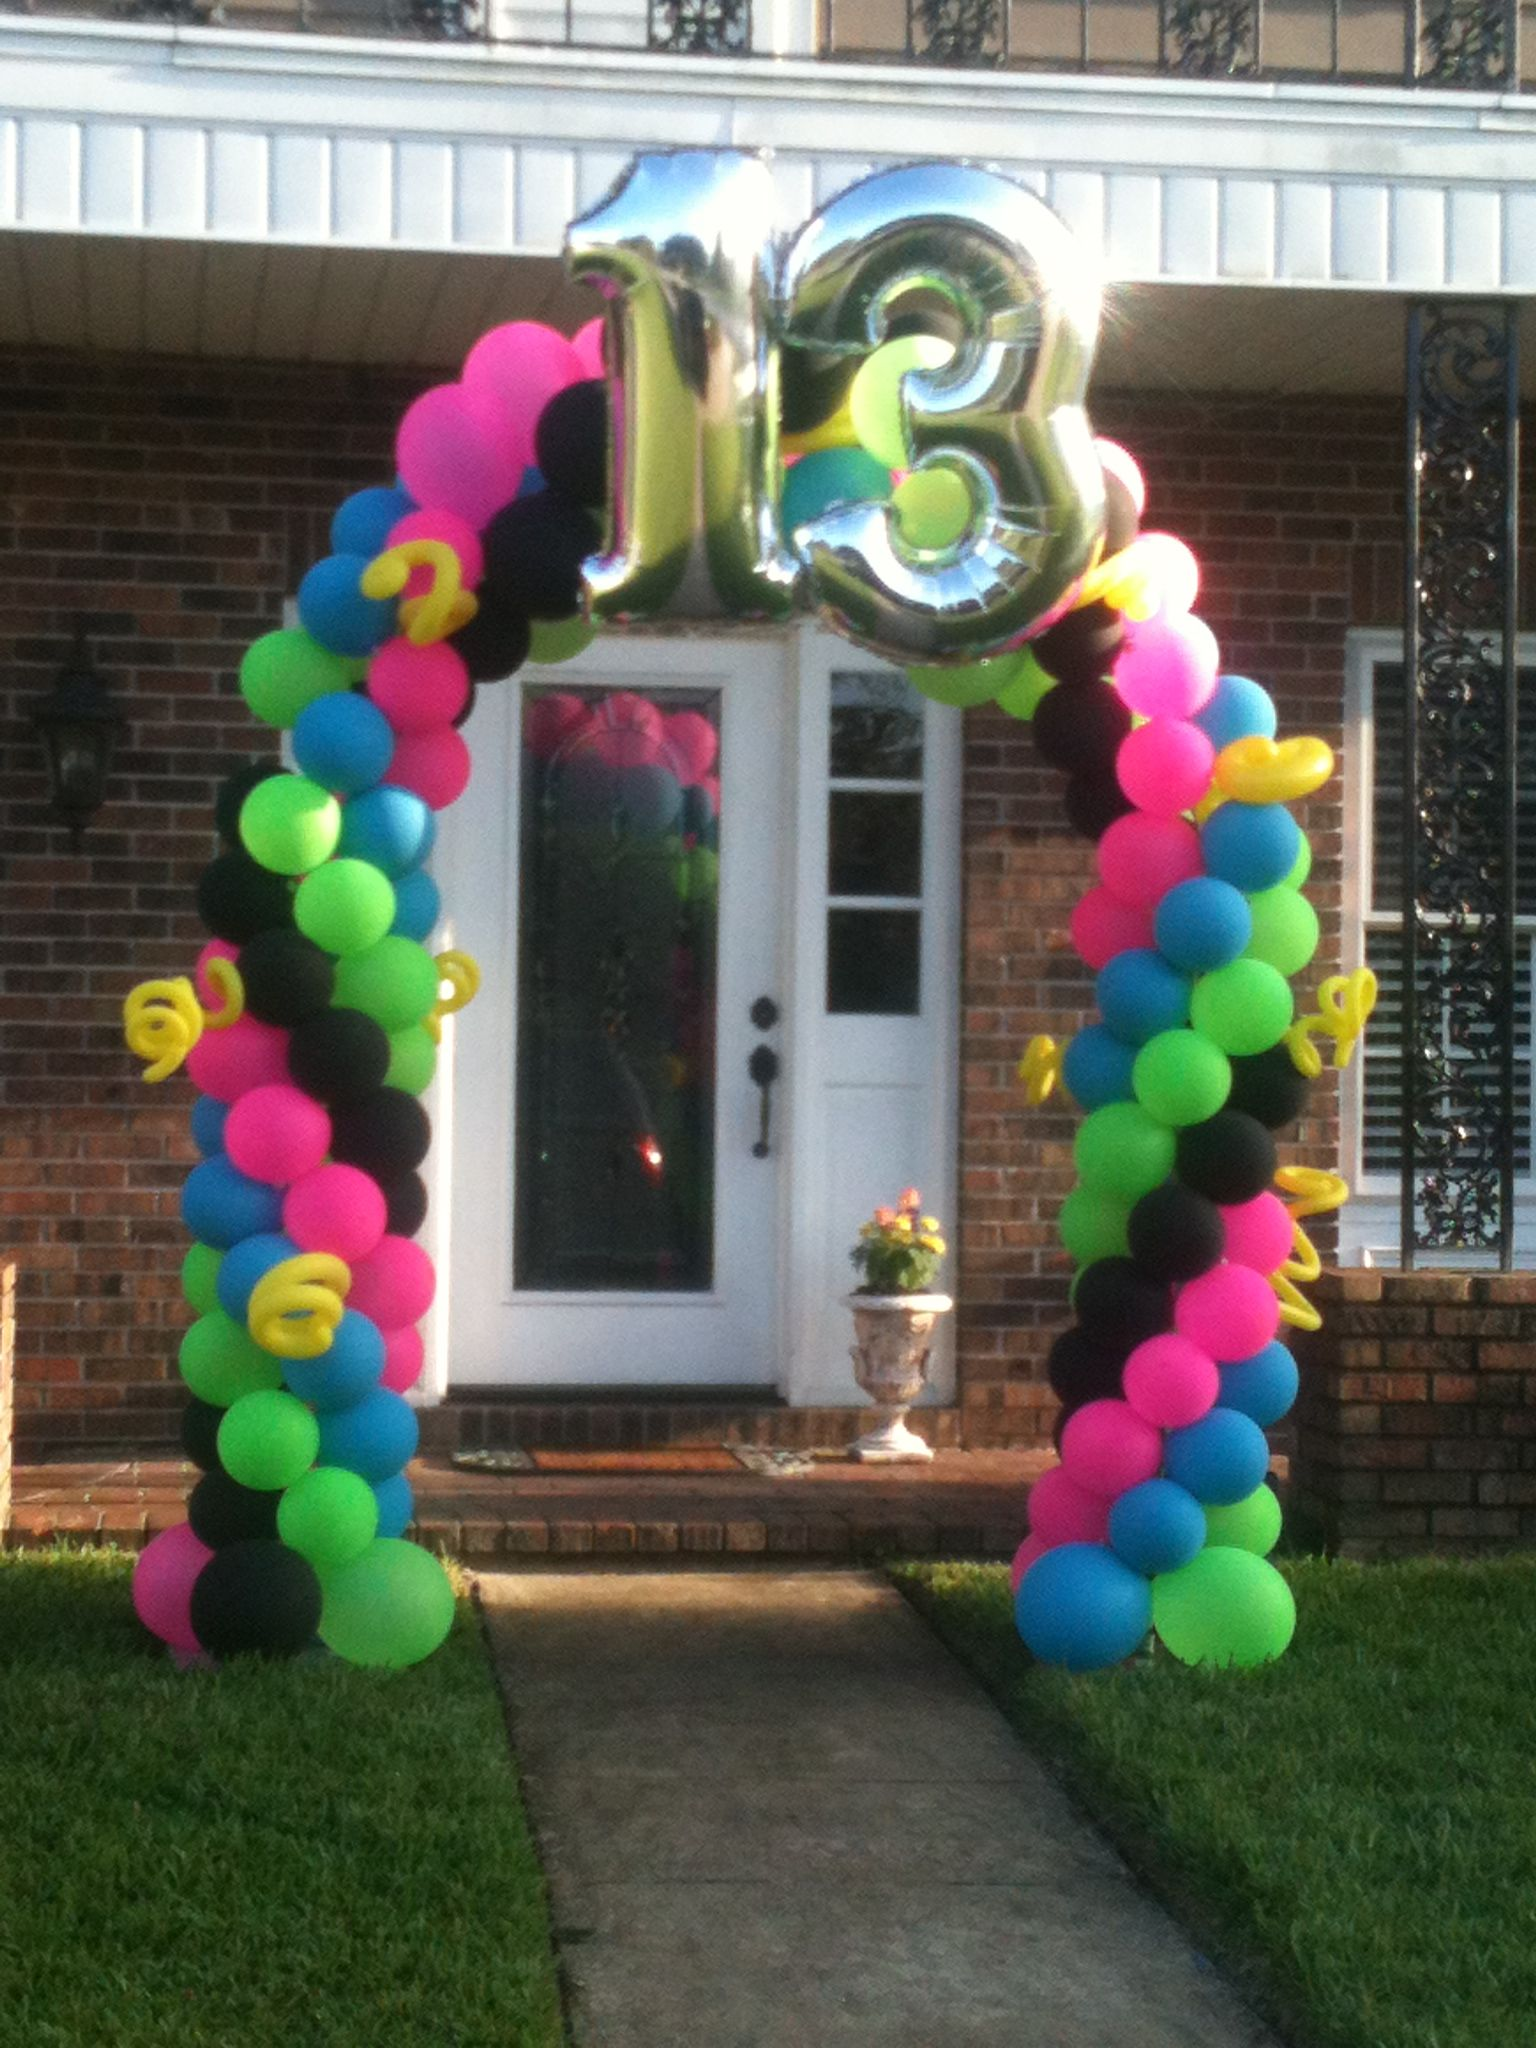 Neon 13th birthday balloon arch orlando party store for 13th birthday decoration ideas